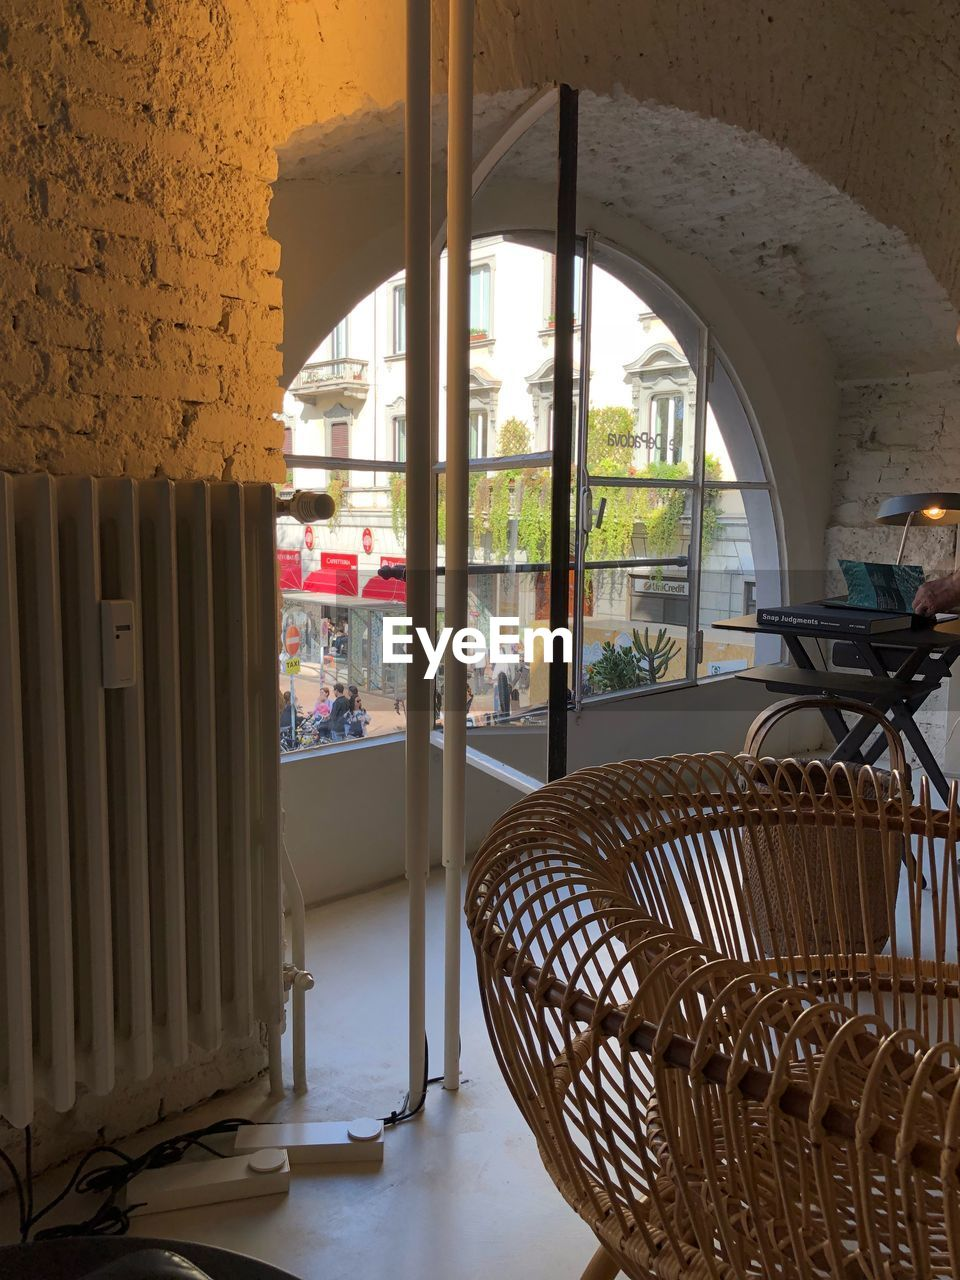 chair, indoors, seat, architecture, window, day, no people, table, built structure, basket, furniture, wicker, empty, absence, building, architectural column, glass - material, focus on foreground